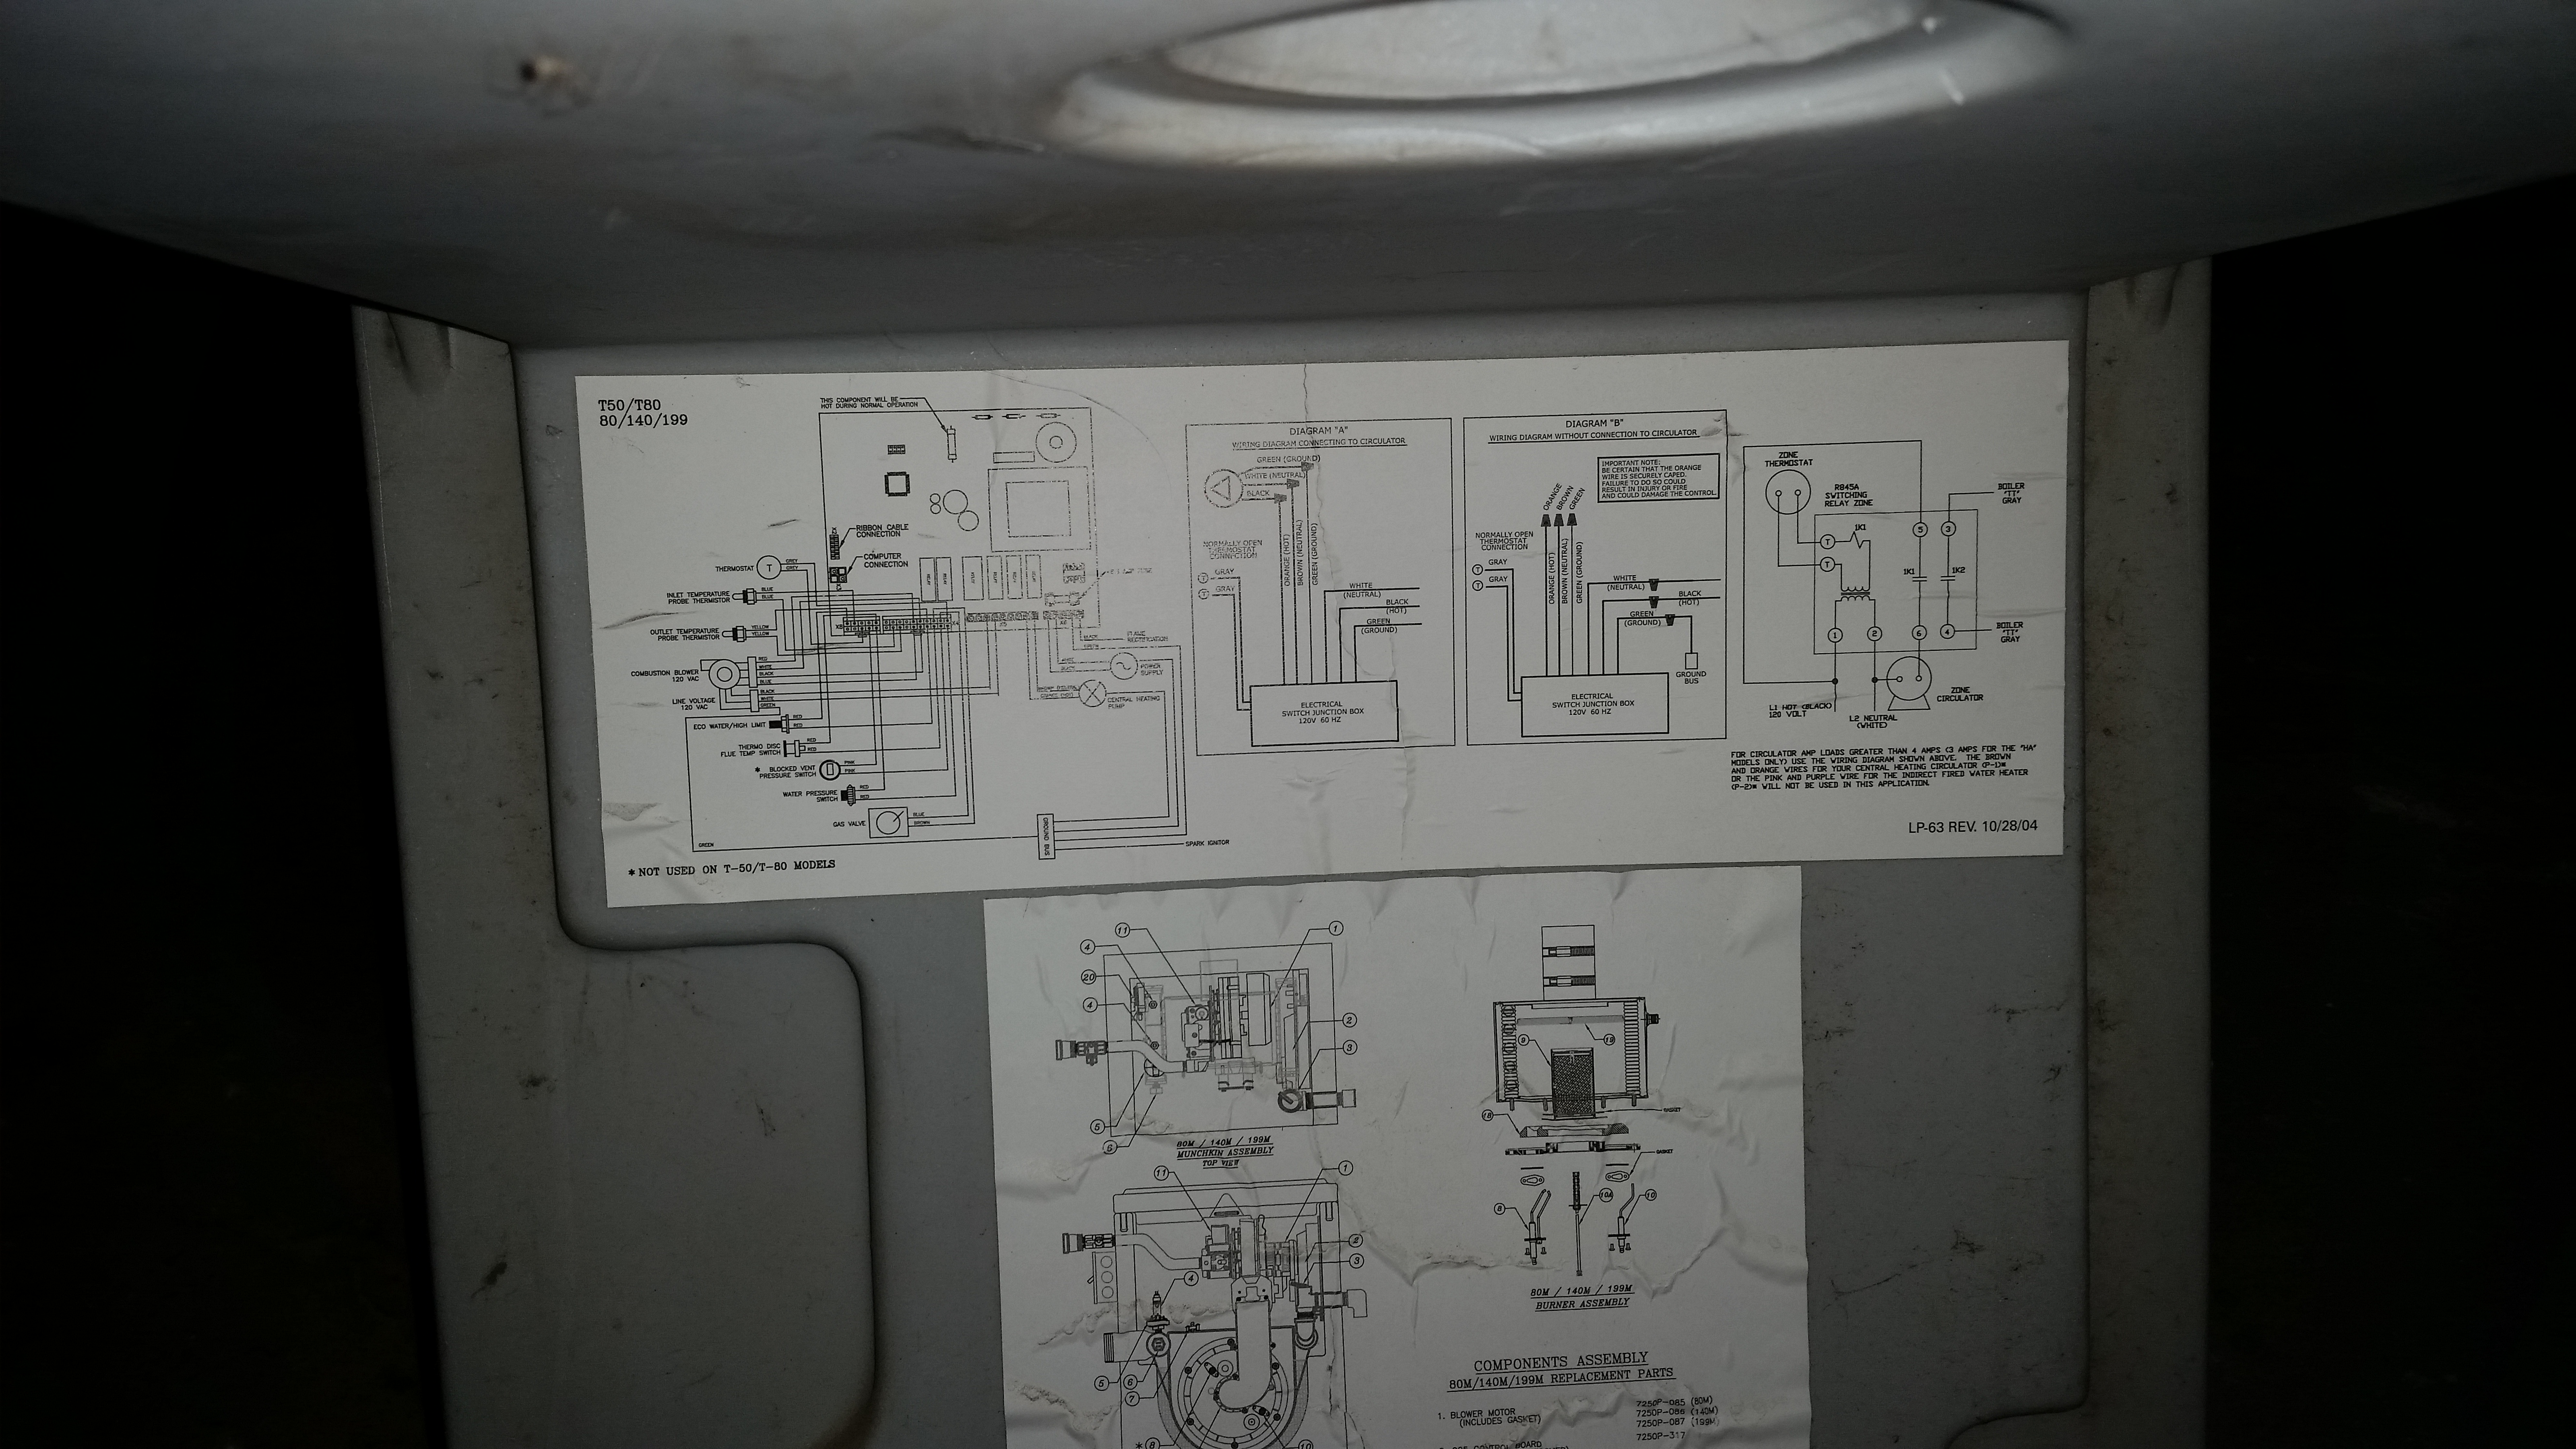 munchkin boiler model 140m r1 no power to fault code display any Boiler Installation Diagram